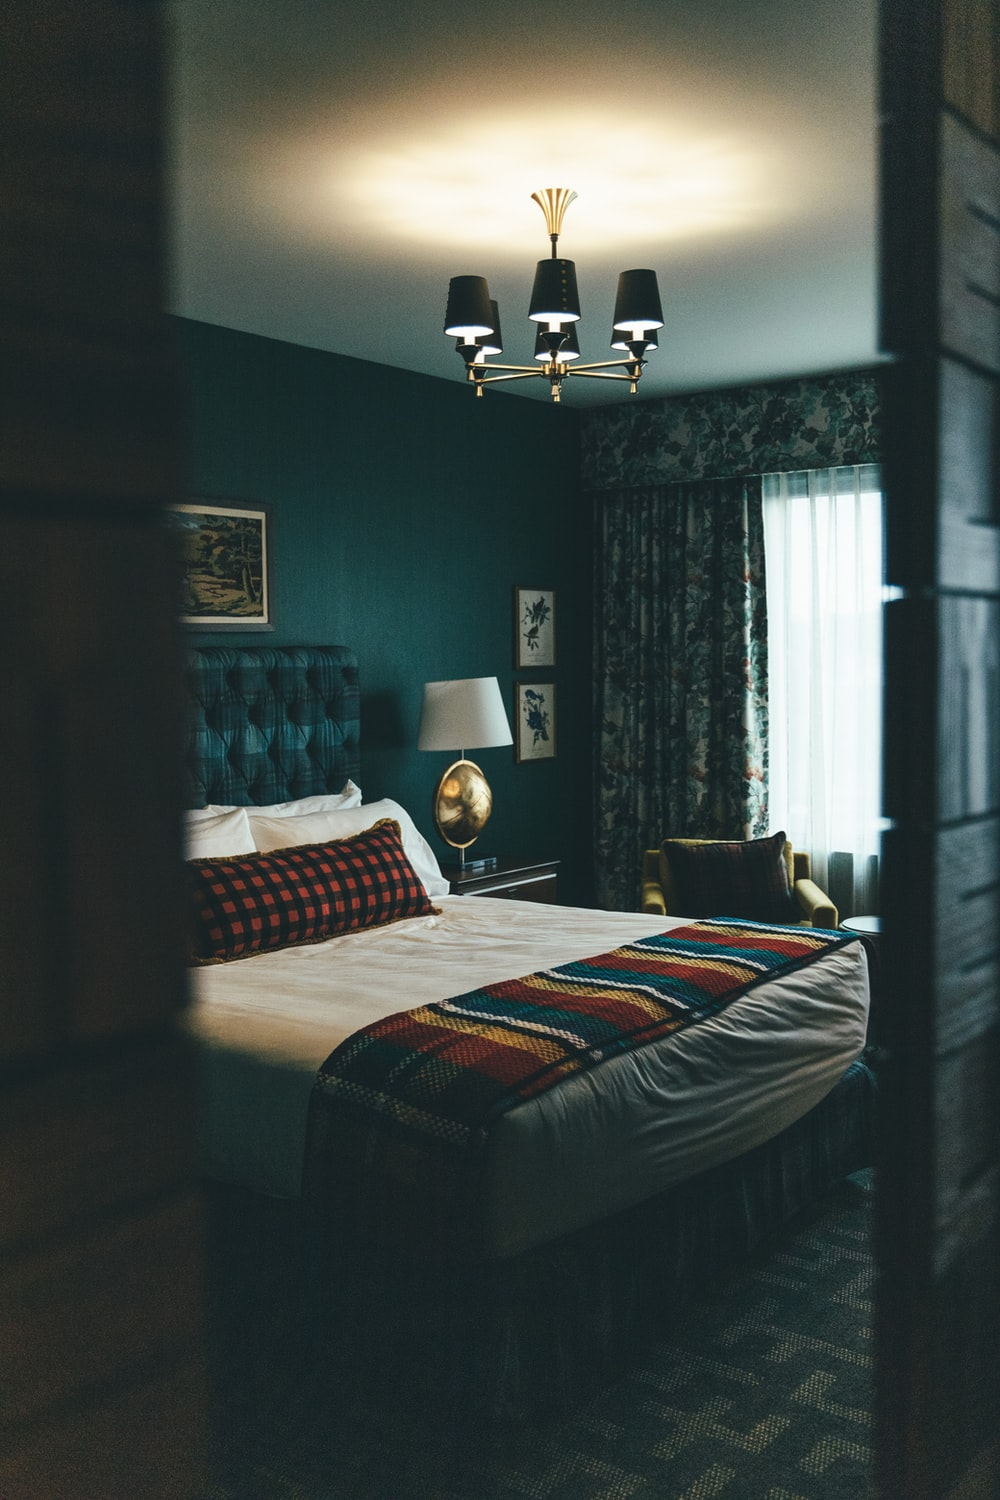 black and white floor lamp near bed